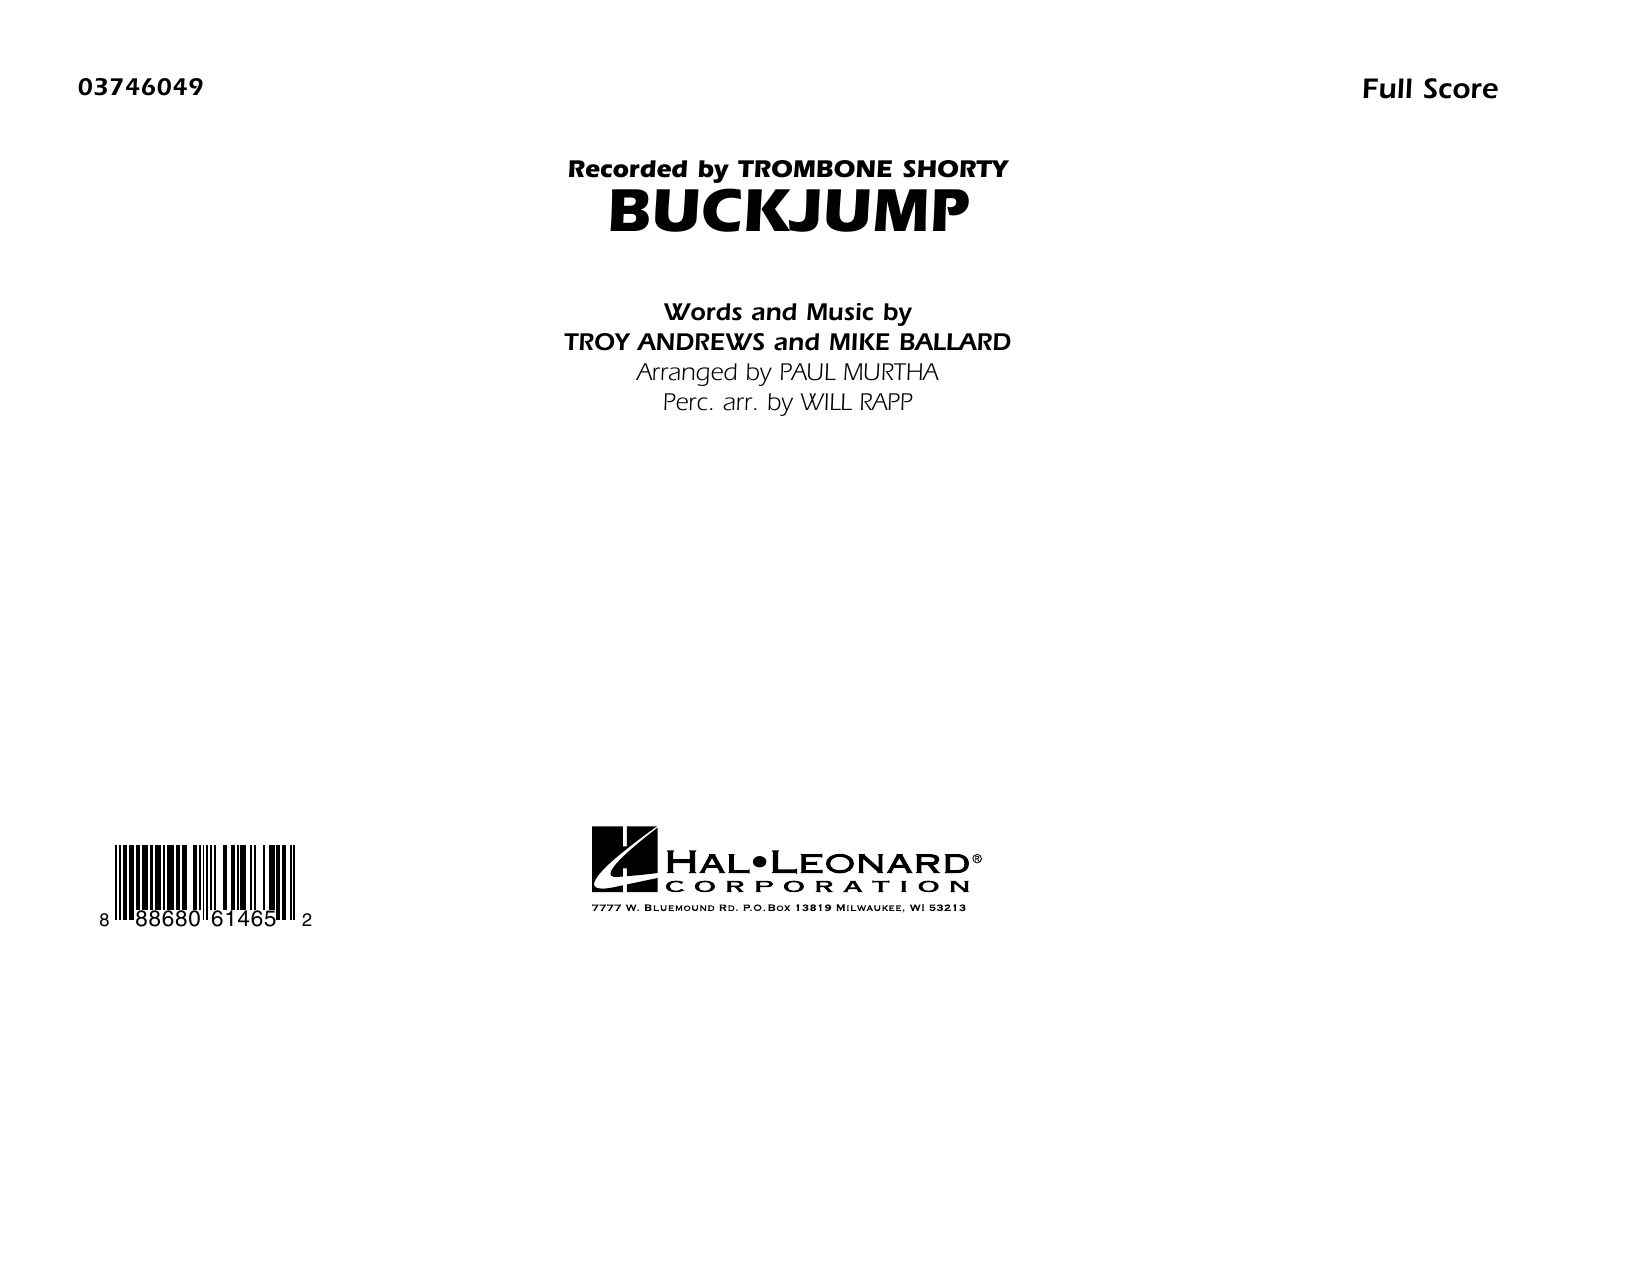 Buckjump (COMPLETE) sheet music for marching band by Paul Murtha, Trombone Shorty and Will Rapp. Score Image Preview.